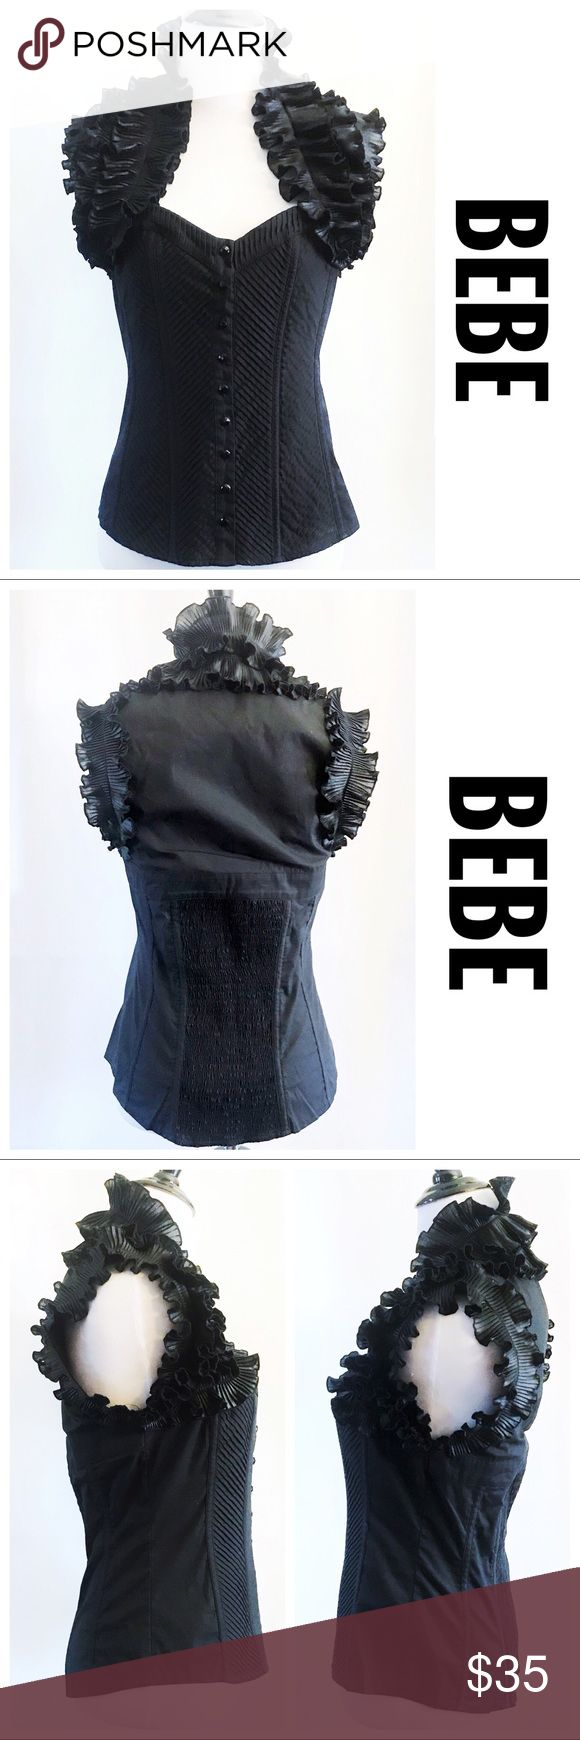 "[BEBE] Black Accordion Ruffle Corset Style Top, M DESCRIPTIONS: BEBE Black Accordion Ruffle Corset Style Top, M - Ruffled accordion details - Black rhinestones Buttons - Sweetheart corset style; Pleated front - Elastic smocking back detail - Sleeveless   MEASUREMENTS (approx.): 25"" Length; 16.5"" Armpit to Armpit.   MATERIALS:  SHELL: 67% Cotton; 28% Nylon; 5% Spandex TRIM: 100% Polyester  Hand wash.   CONDITIONS: Good condition; Shows minor signs of wear. bebe Tops"